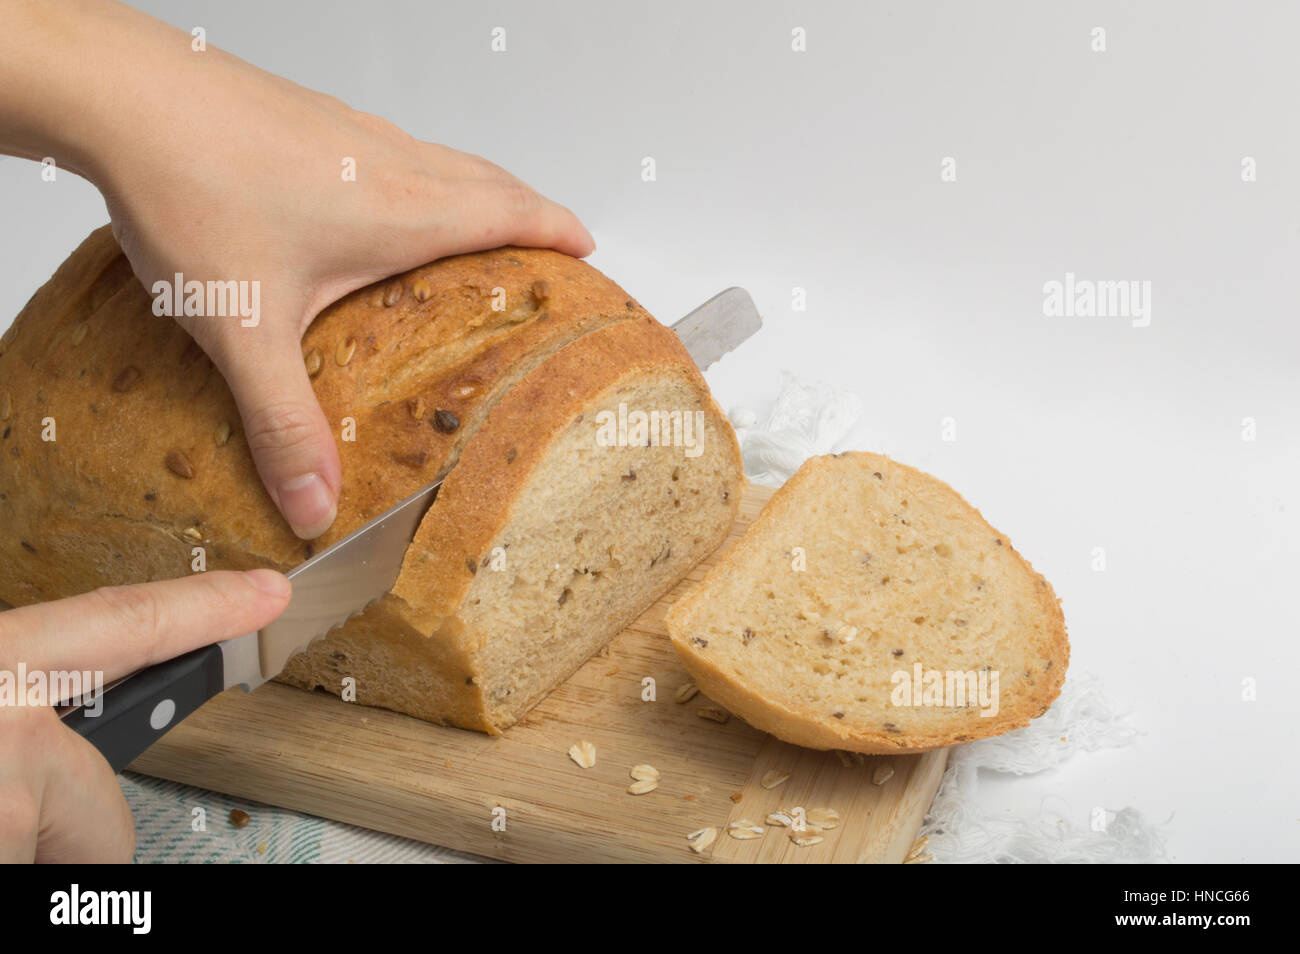 Hands Slicing Whole Wheat Bread With Bread Knife - Stock Image